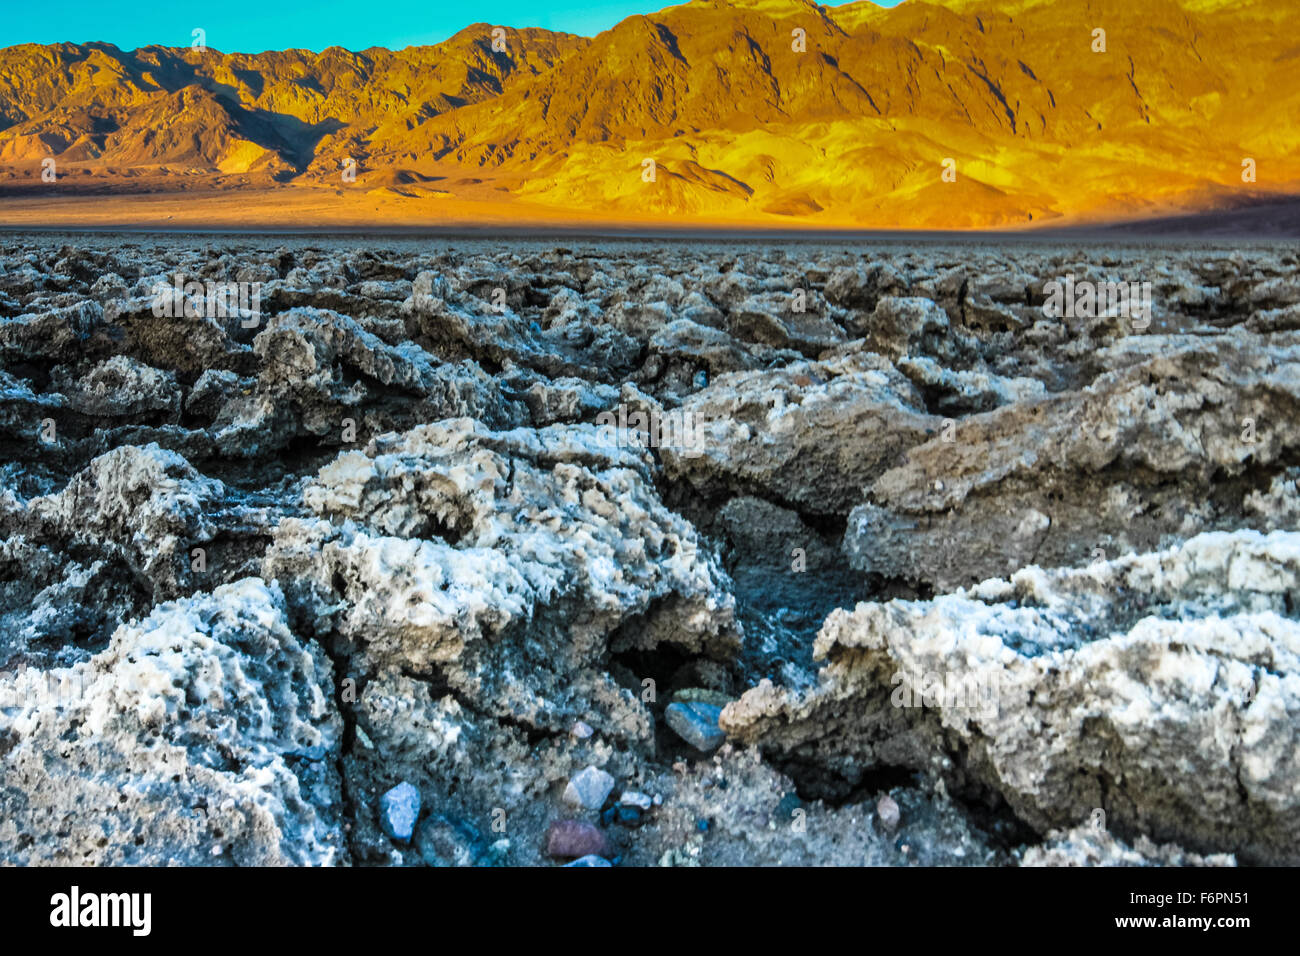 Devil's Golf Course in Death Valley National Park - Stock Image